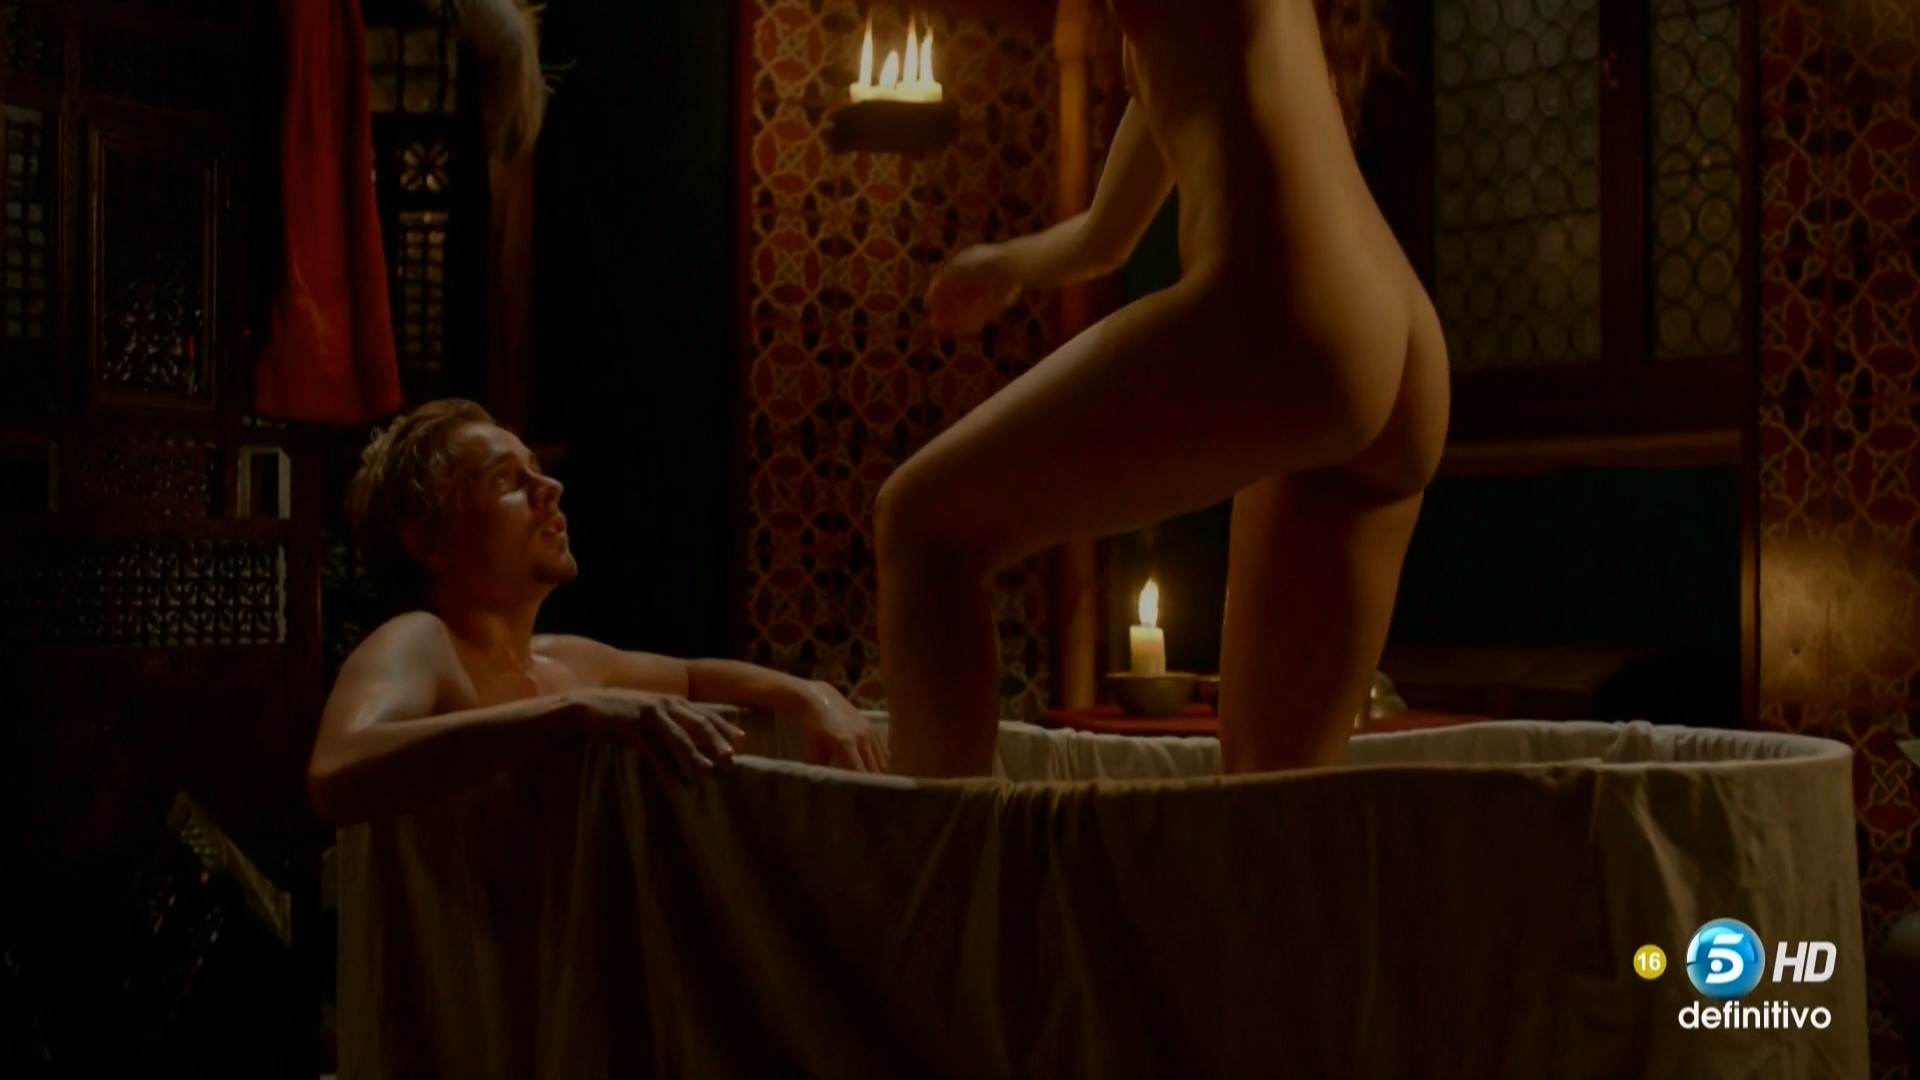 Amanda Schull Nude Scenes tv nudity » page 153 » nudecelebvideo - your box of nude